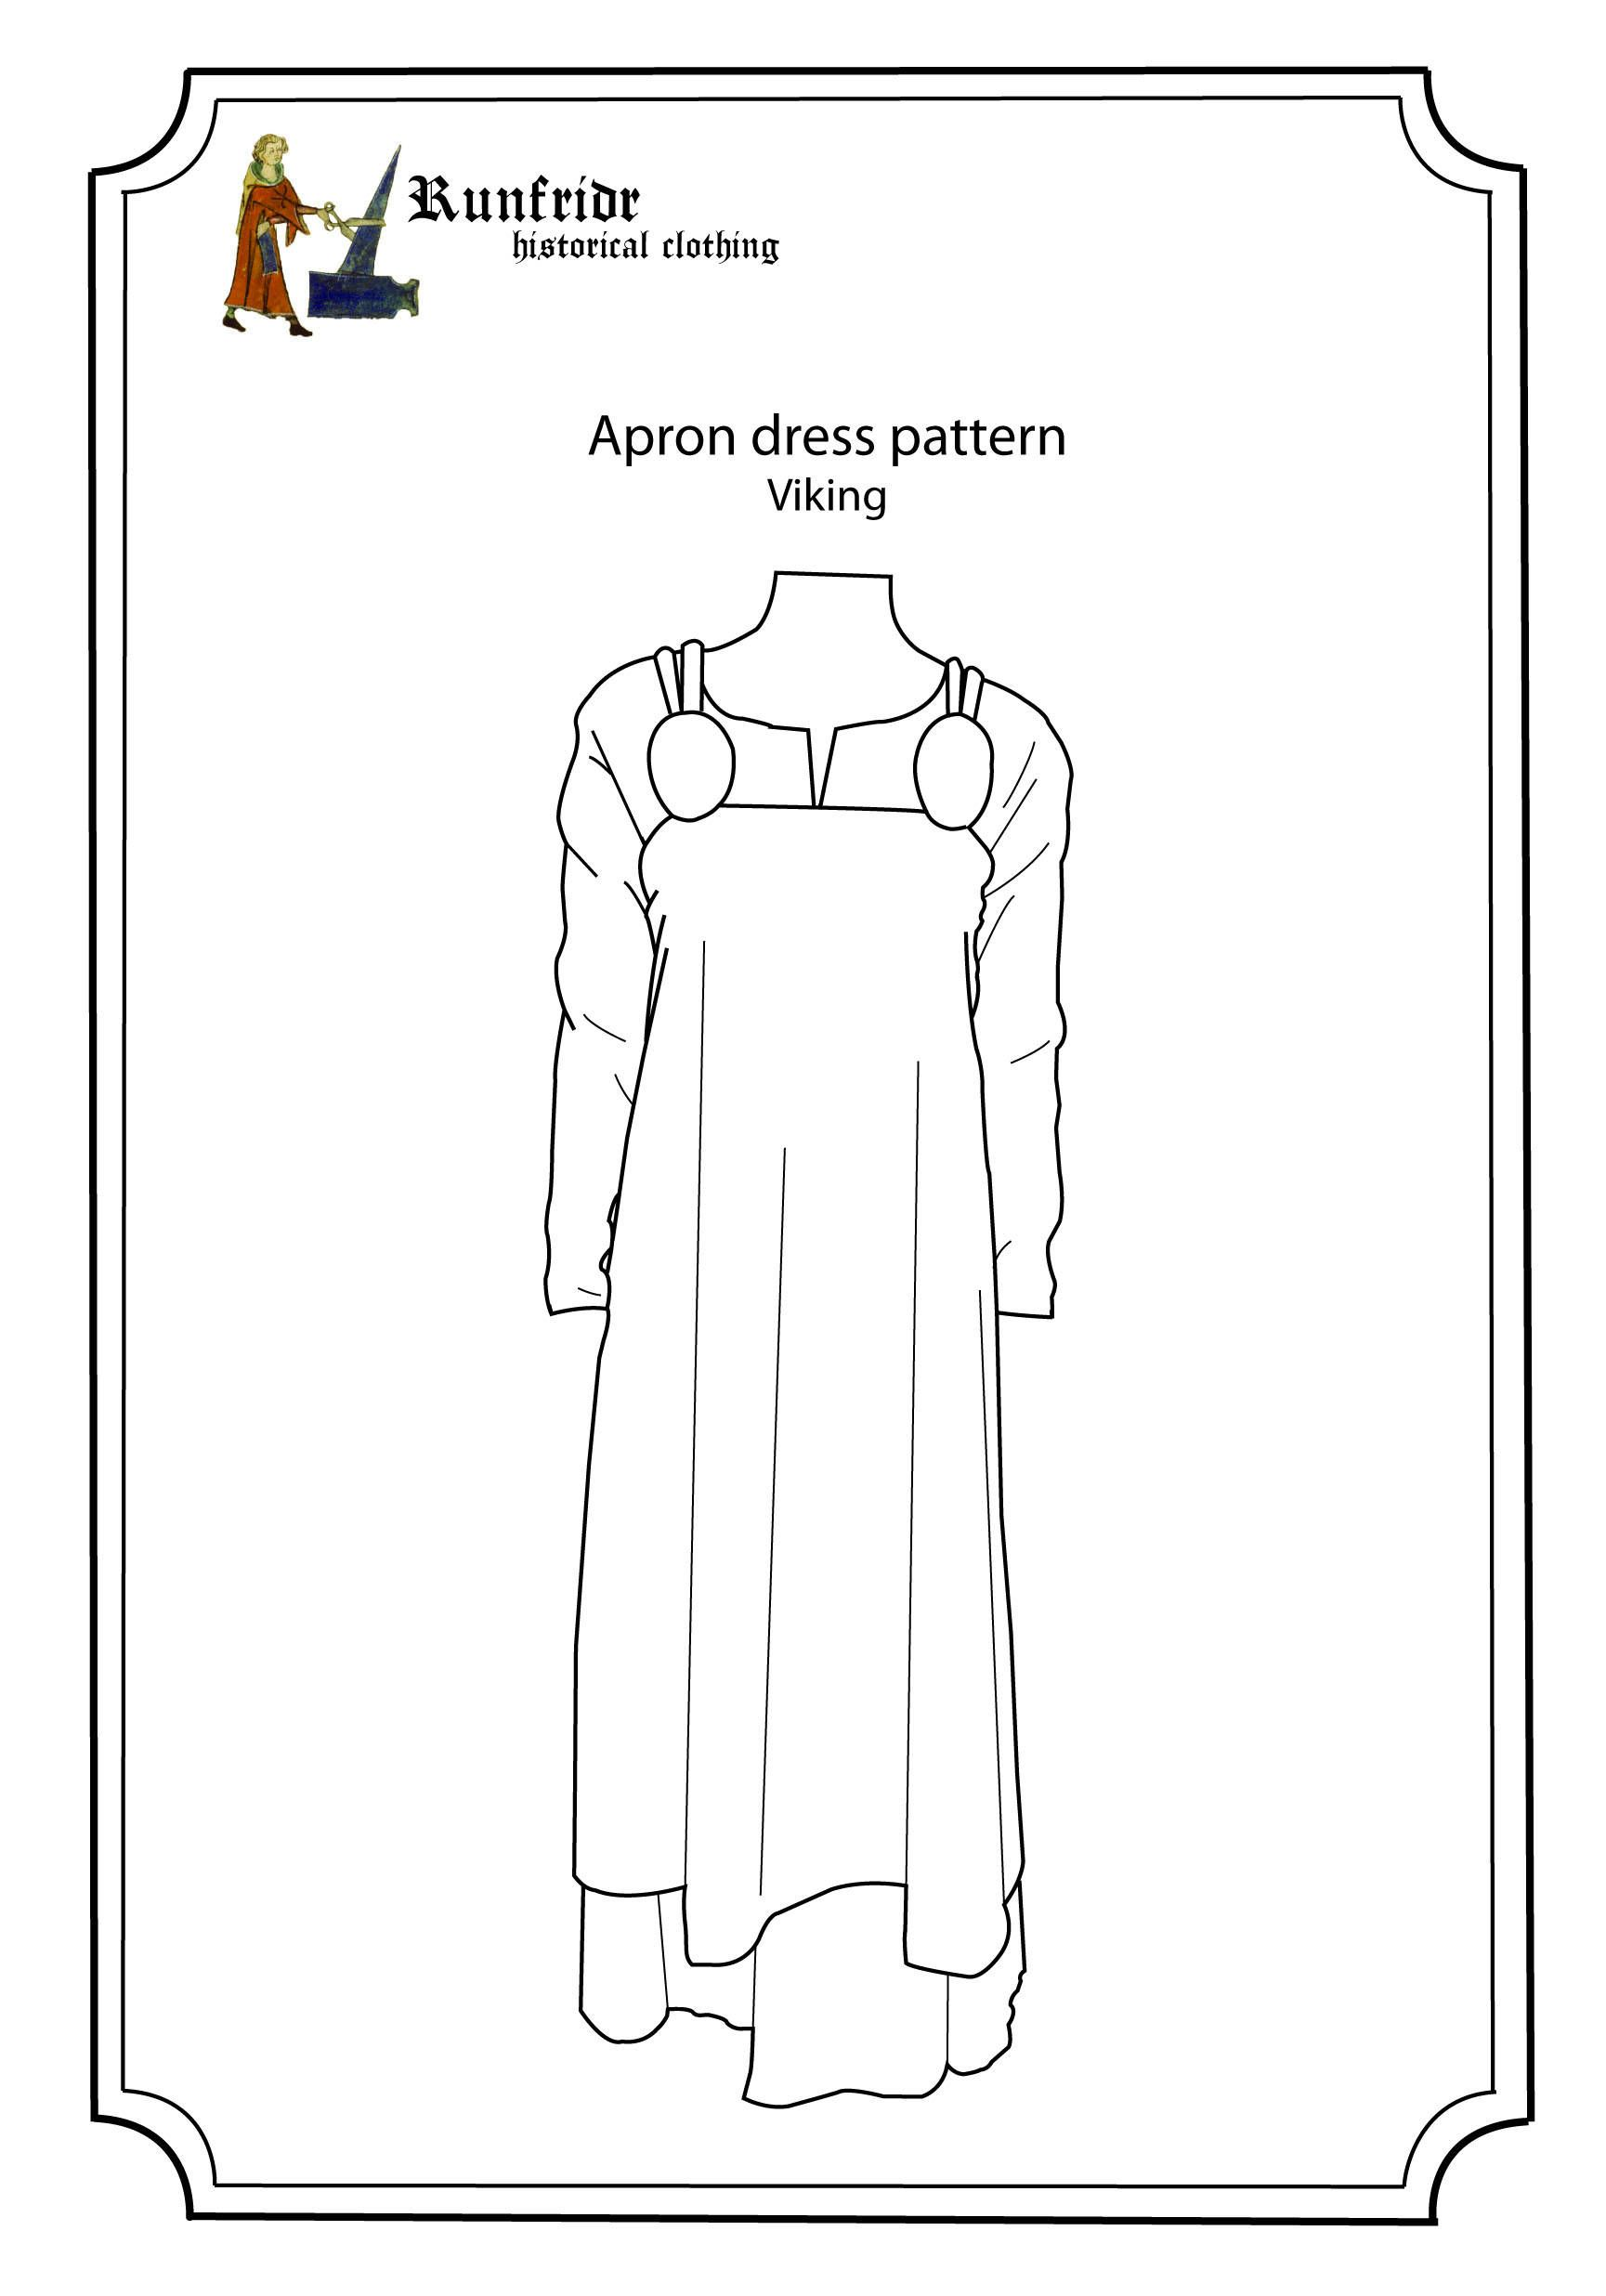 Pattern And Sewing Instructions For Both Handsewing And Machine